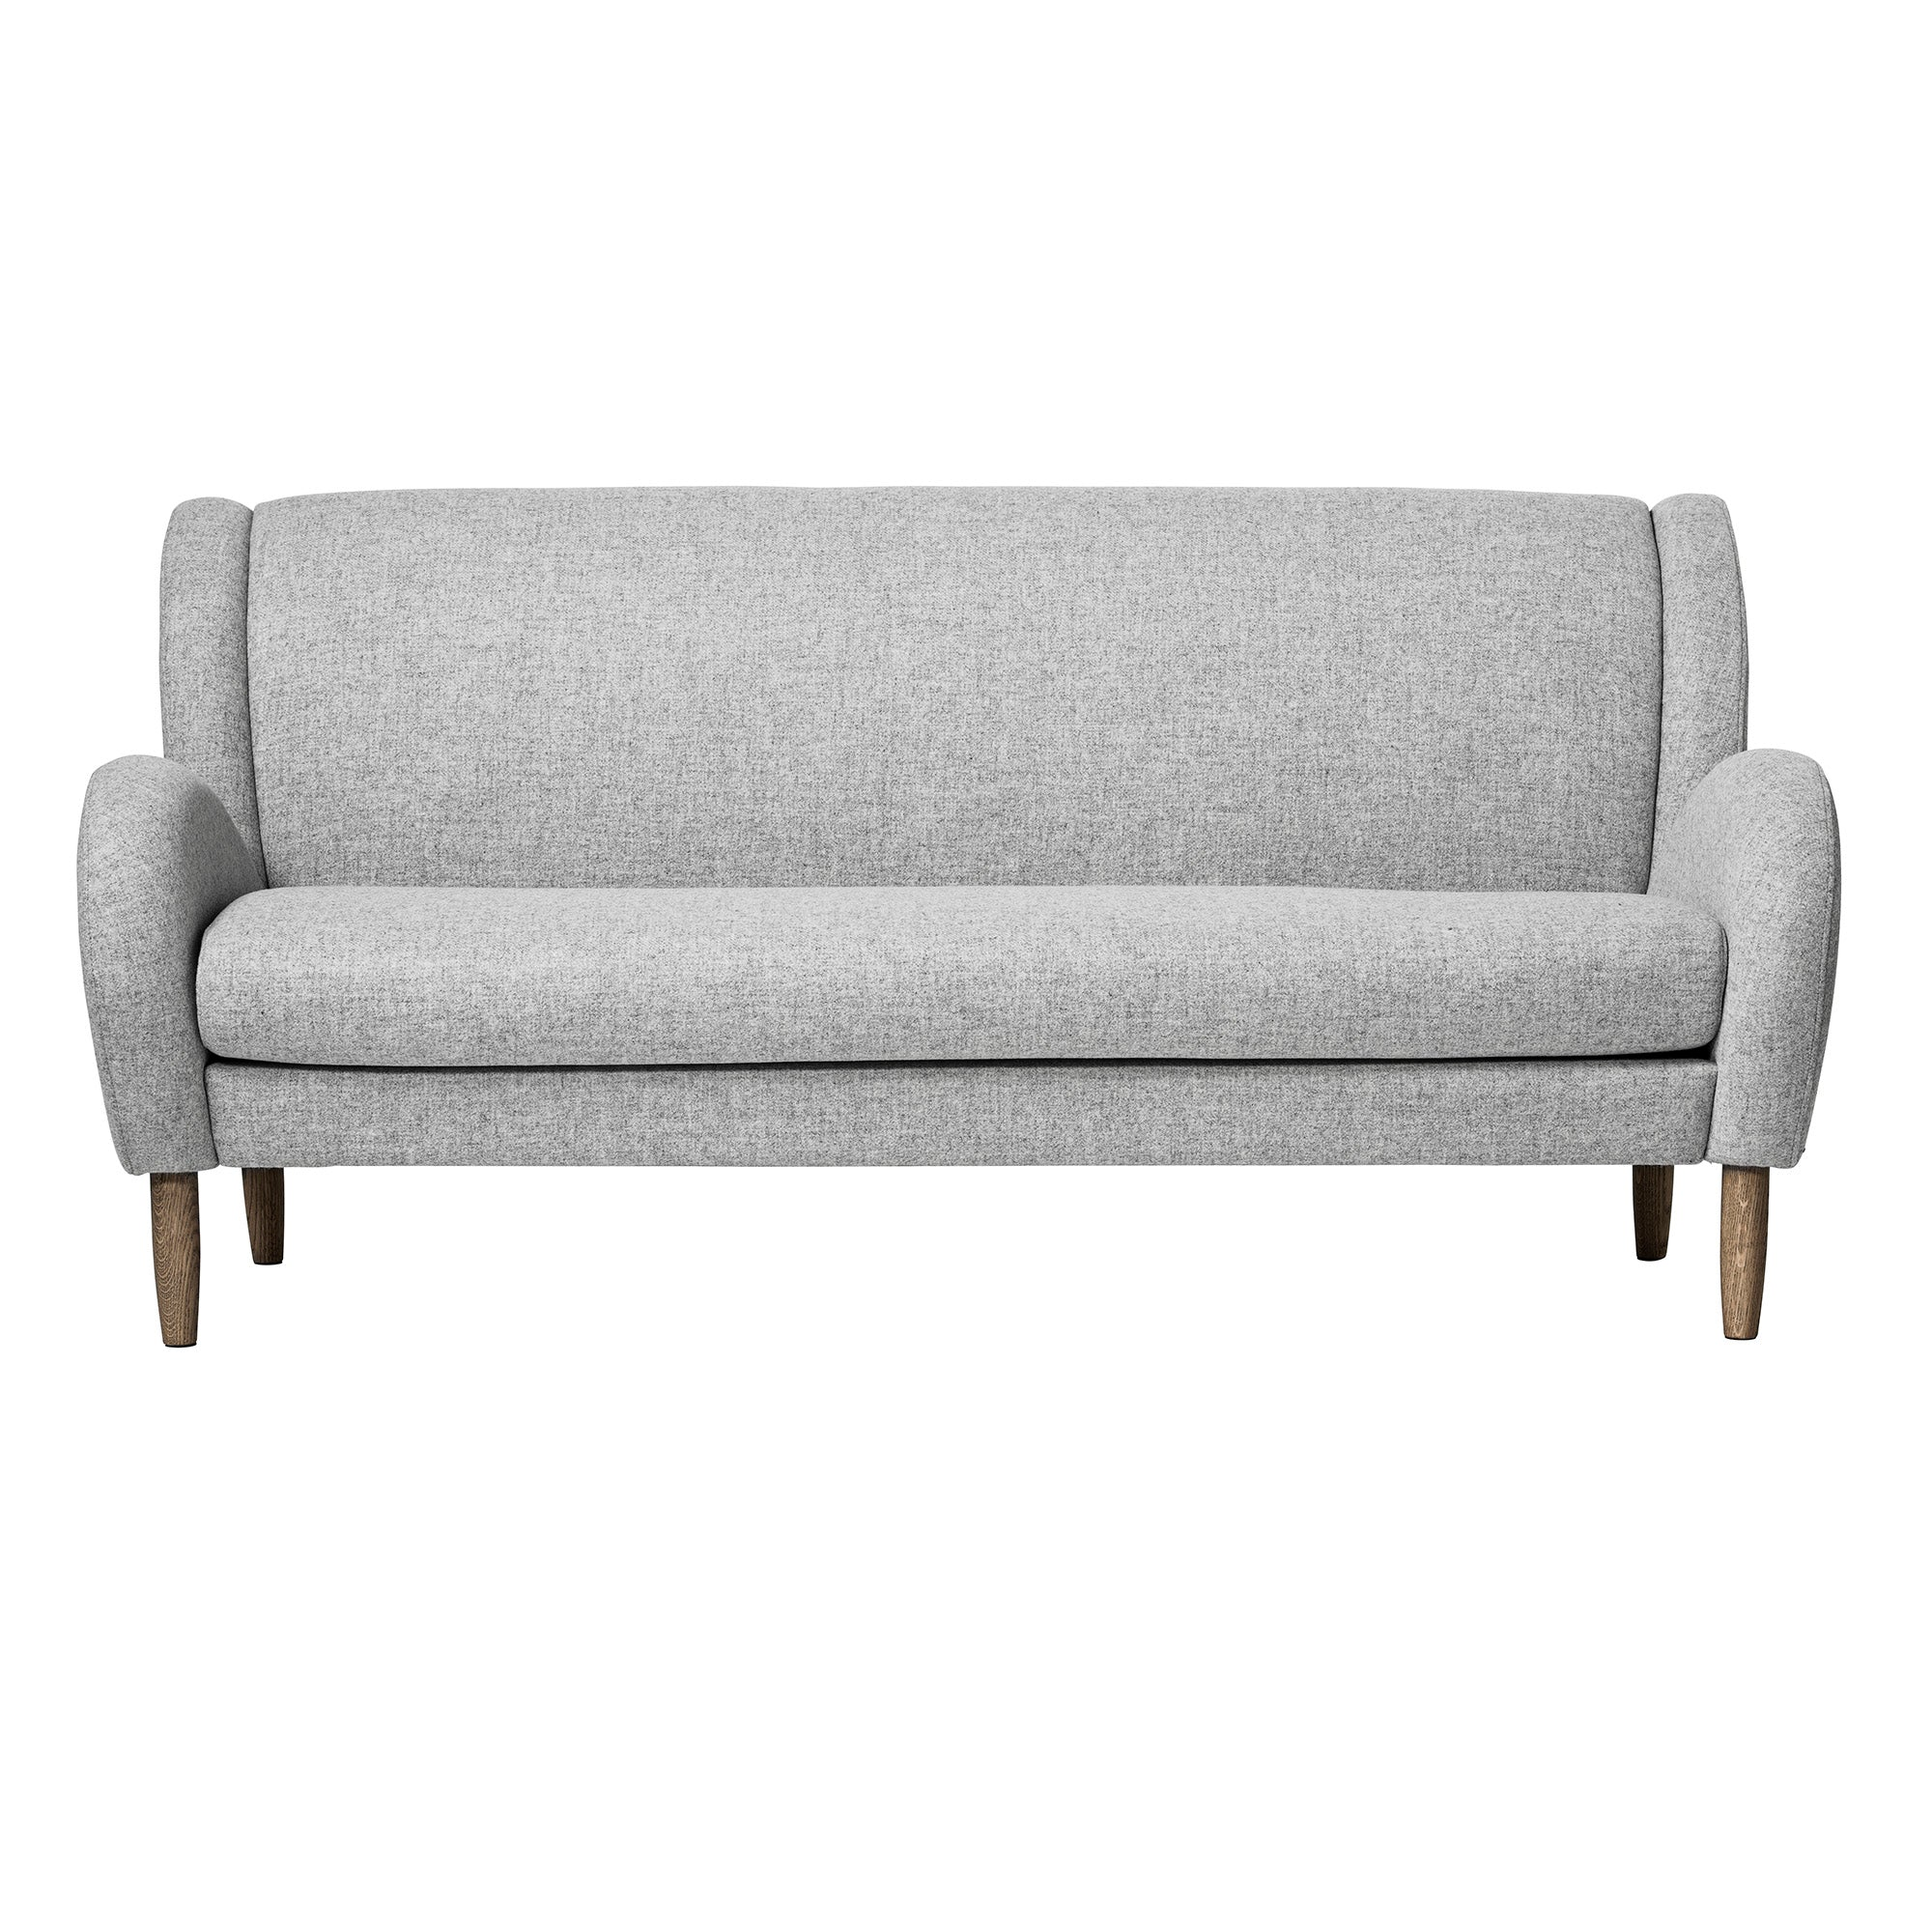 Image of   Bloomingville Chill Sofa, Grå, Uld